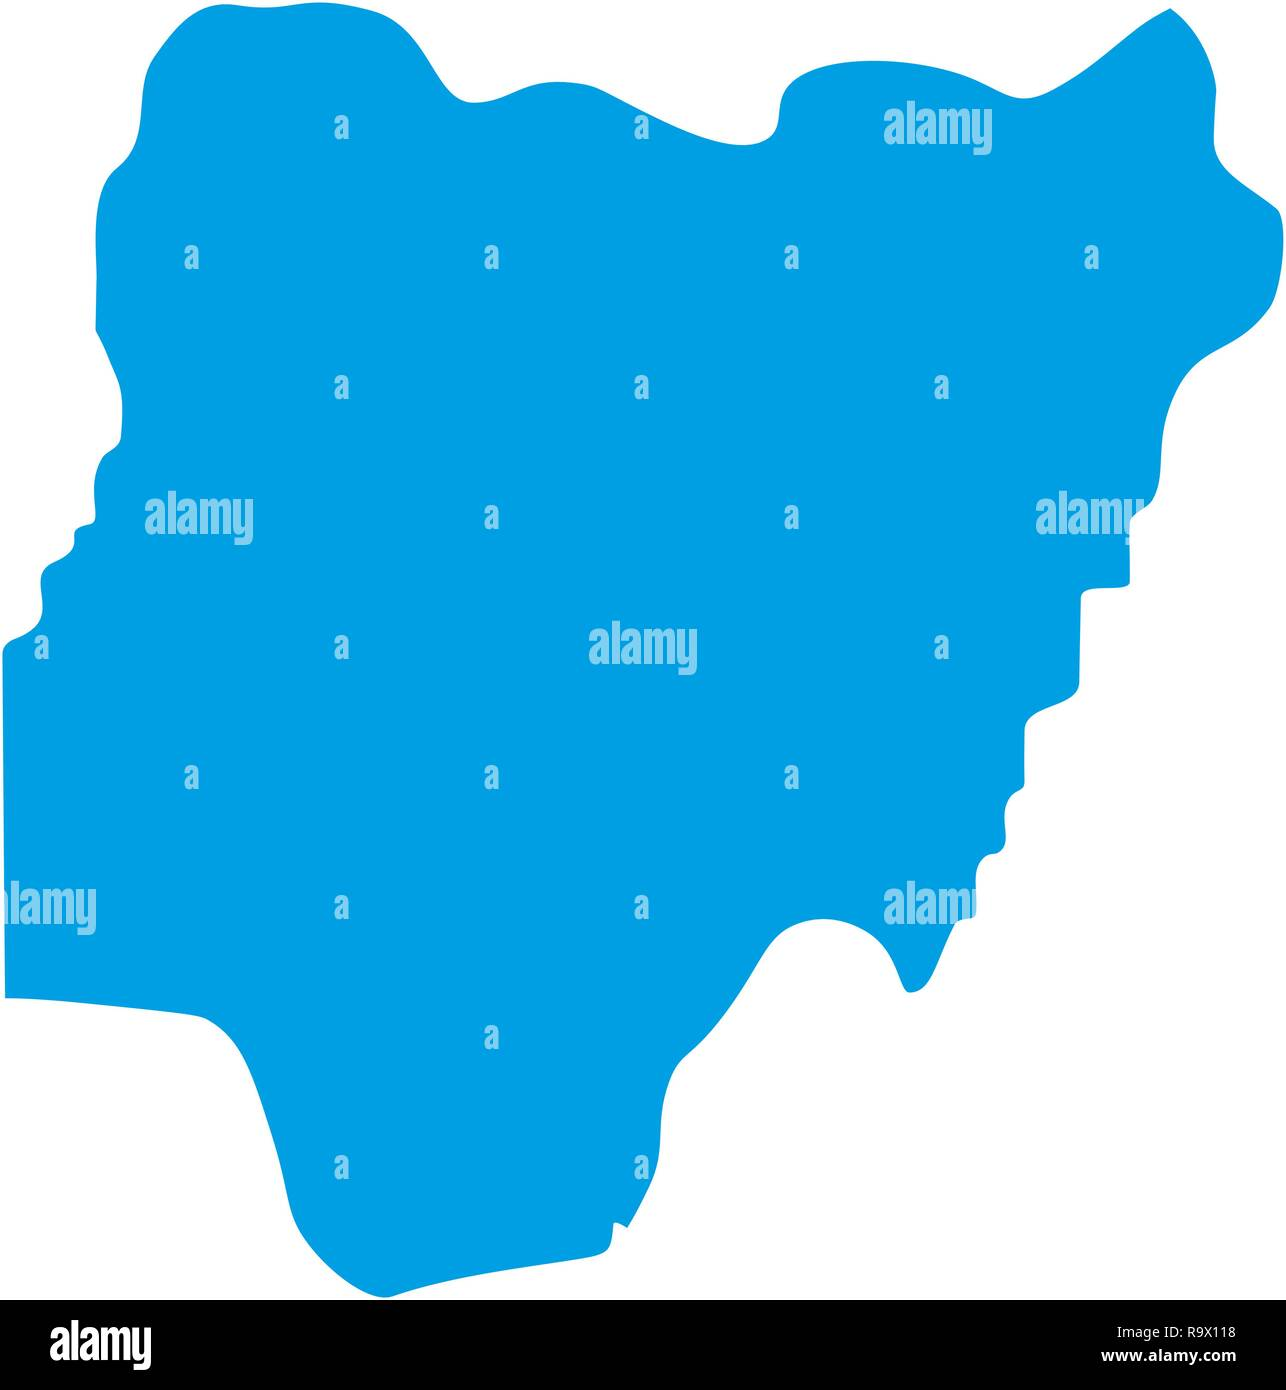 map of Nigeria. Silhouette of Nigeria map vector illustration - Stock Vector